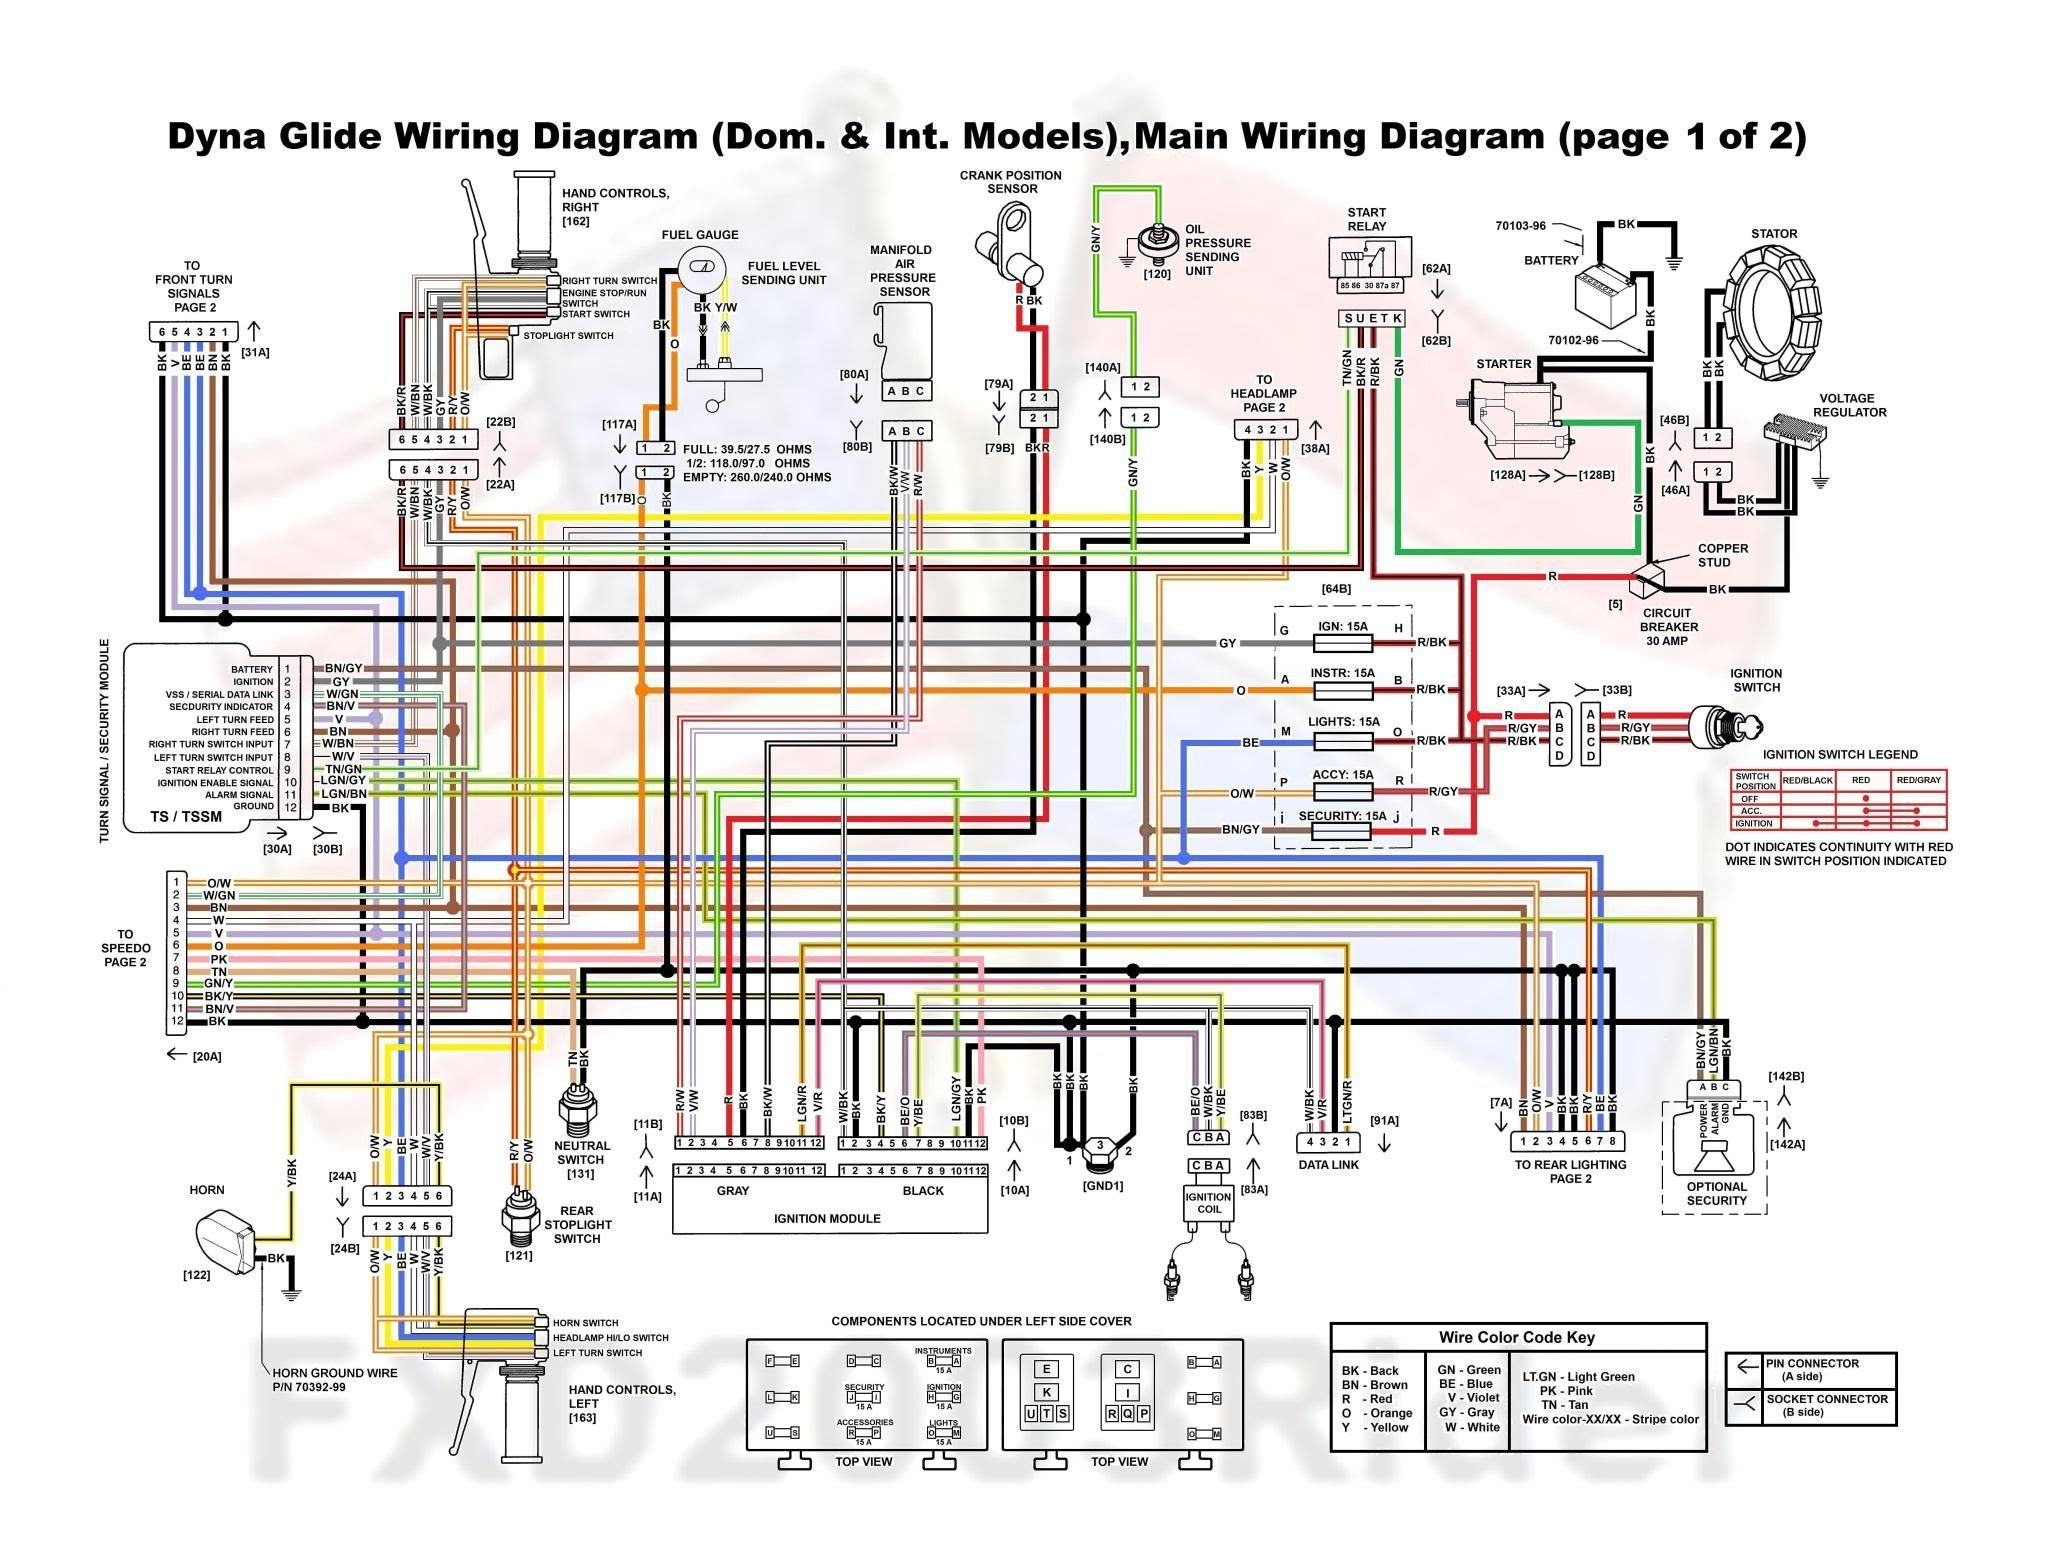 Basic Wiring Diagram For Harley Davidson Wiringdiagram Org Motorcycle Wiring Harley Davidson Ultra Classic Diagram